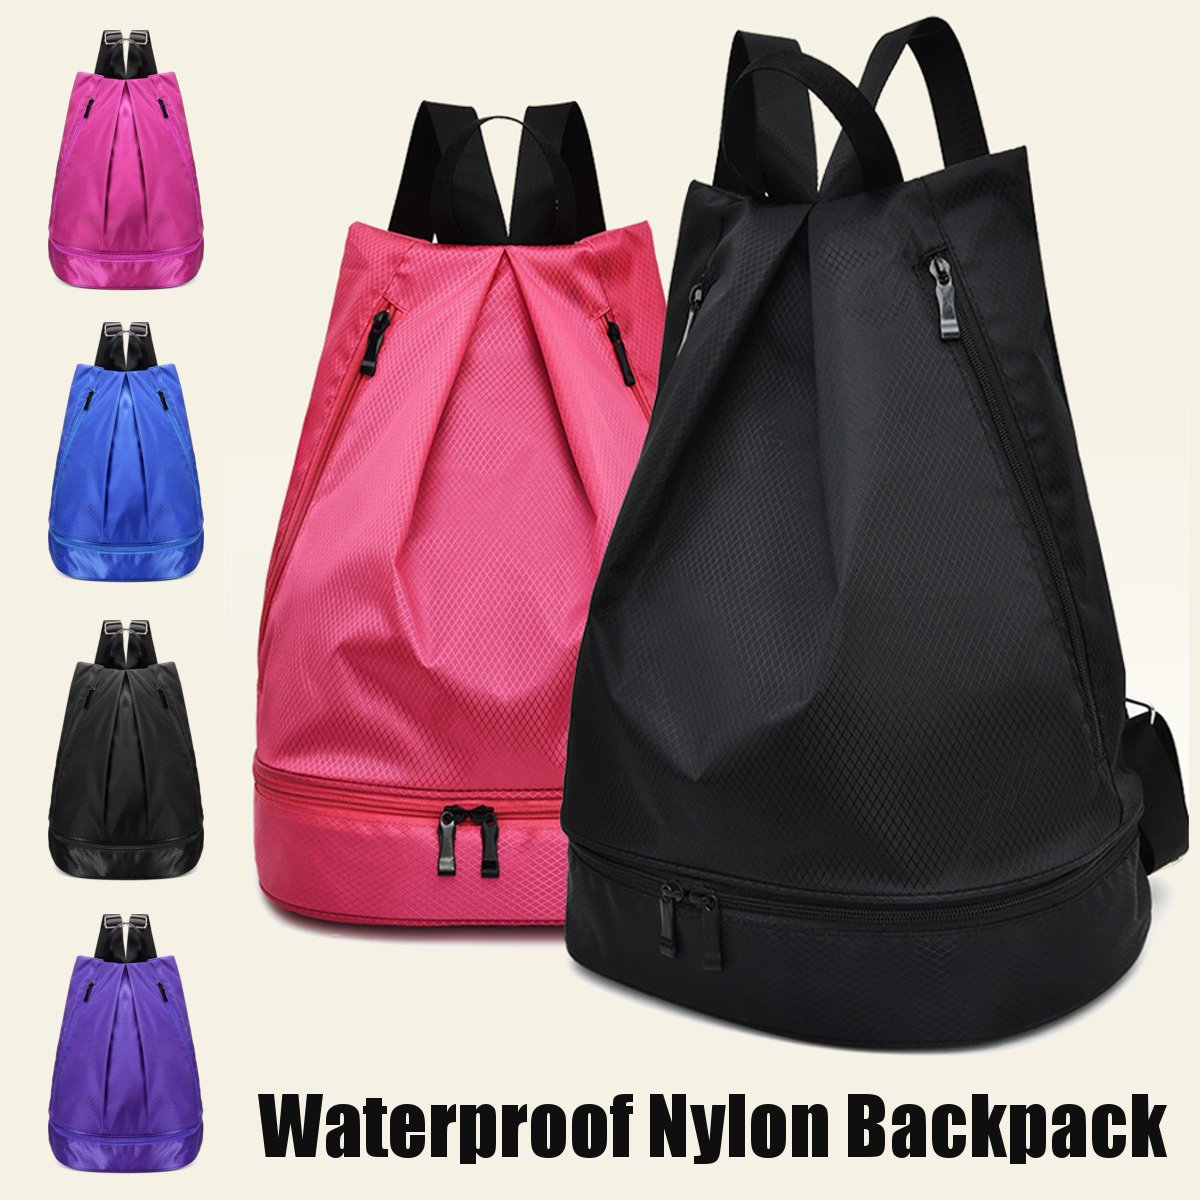 Nylon Shoulder Backpack Waterproof Travel Gym Sport Bags Yoga School Storage Carry Bag  Outdoor Training Travel Hiking Bag